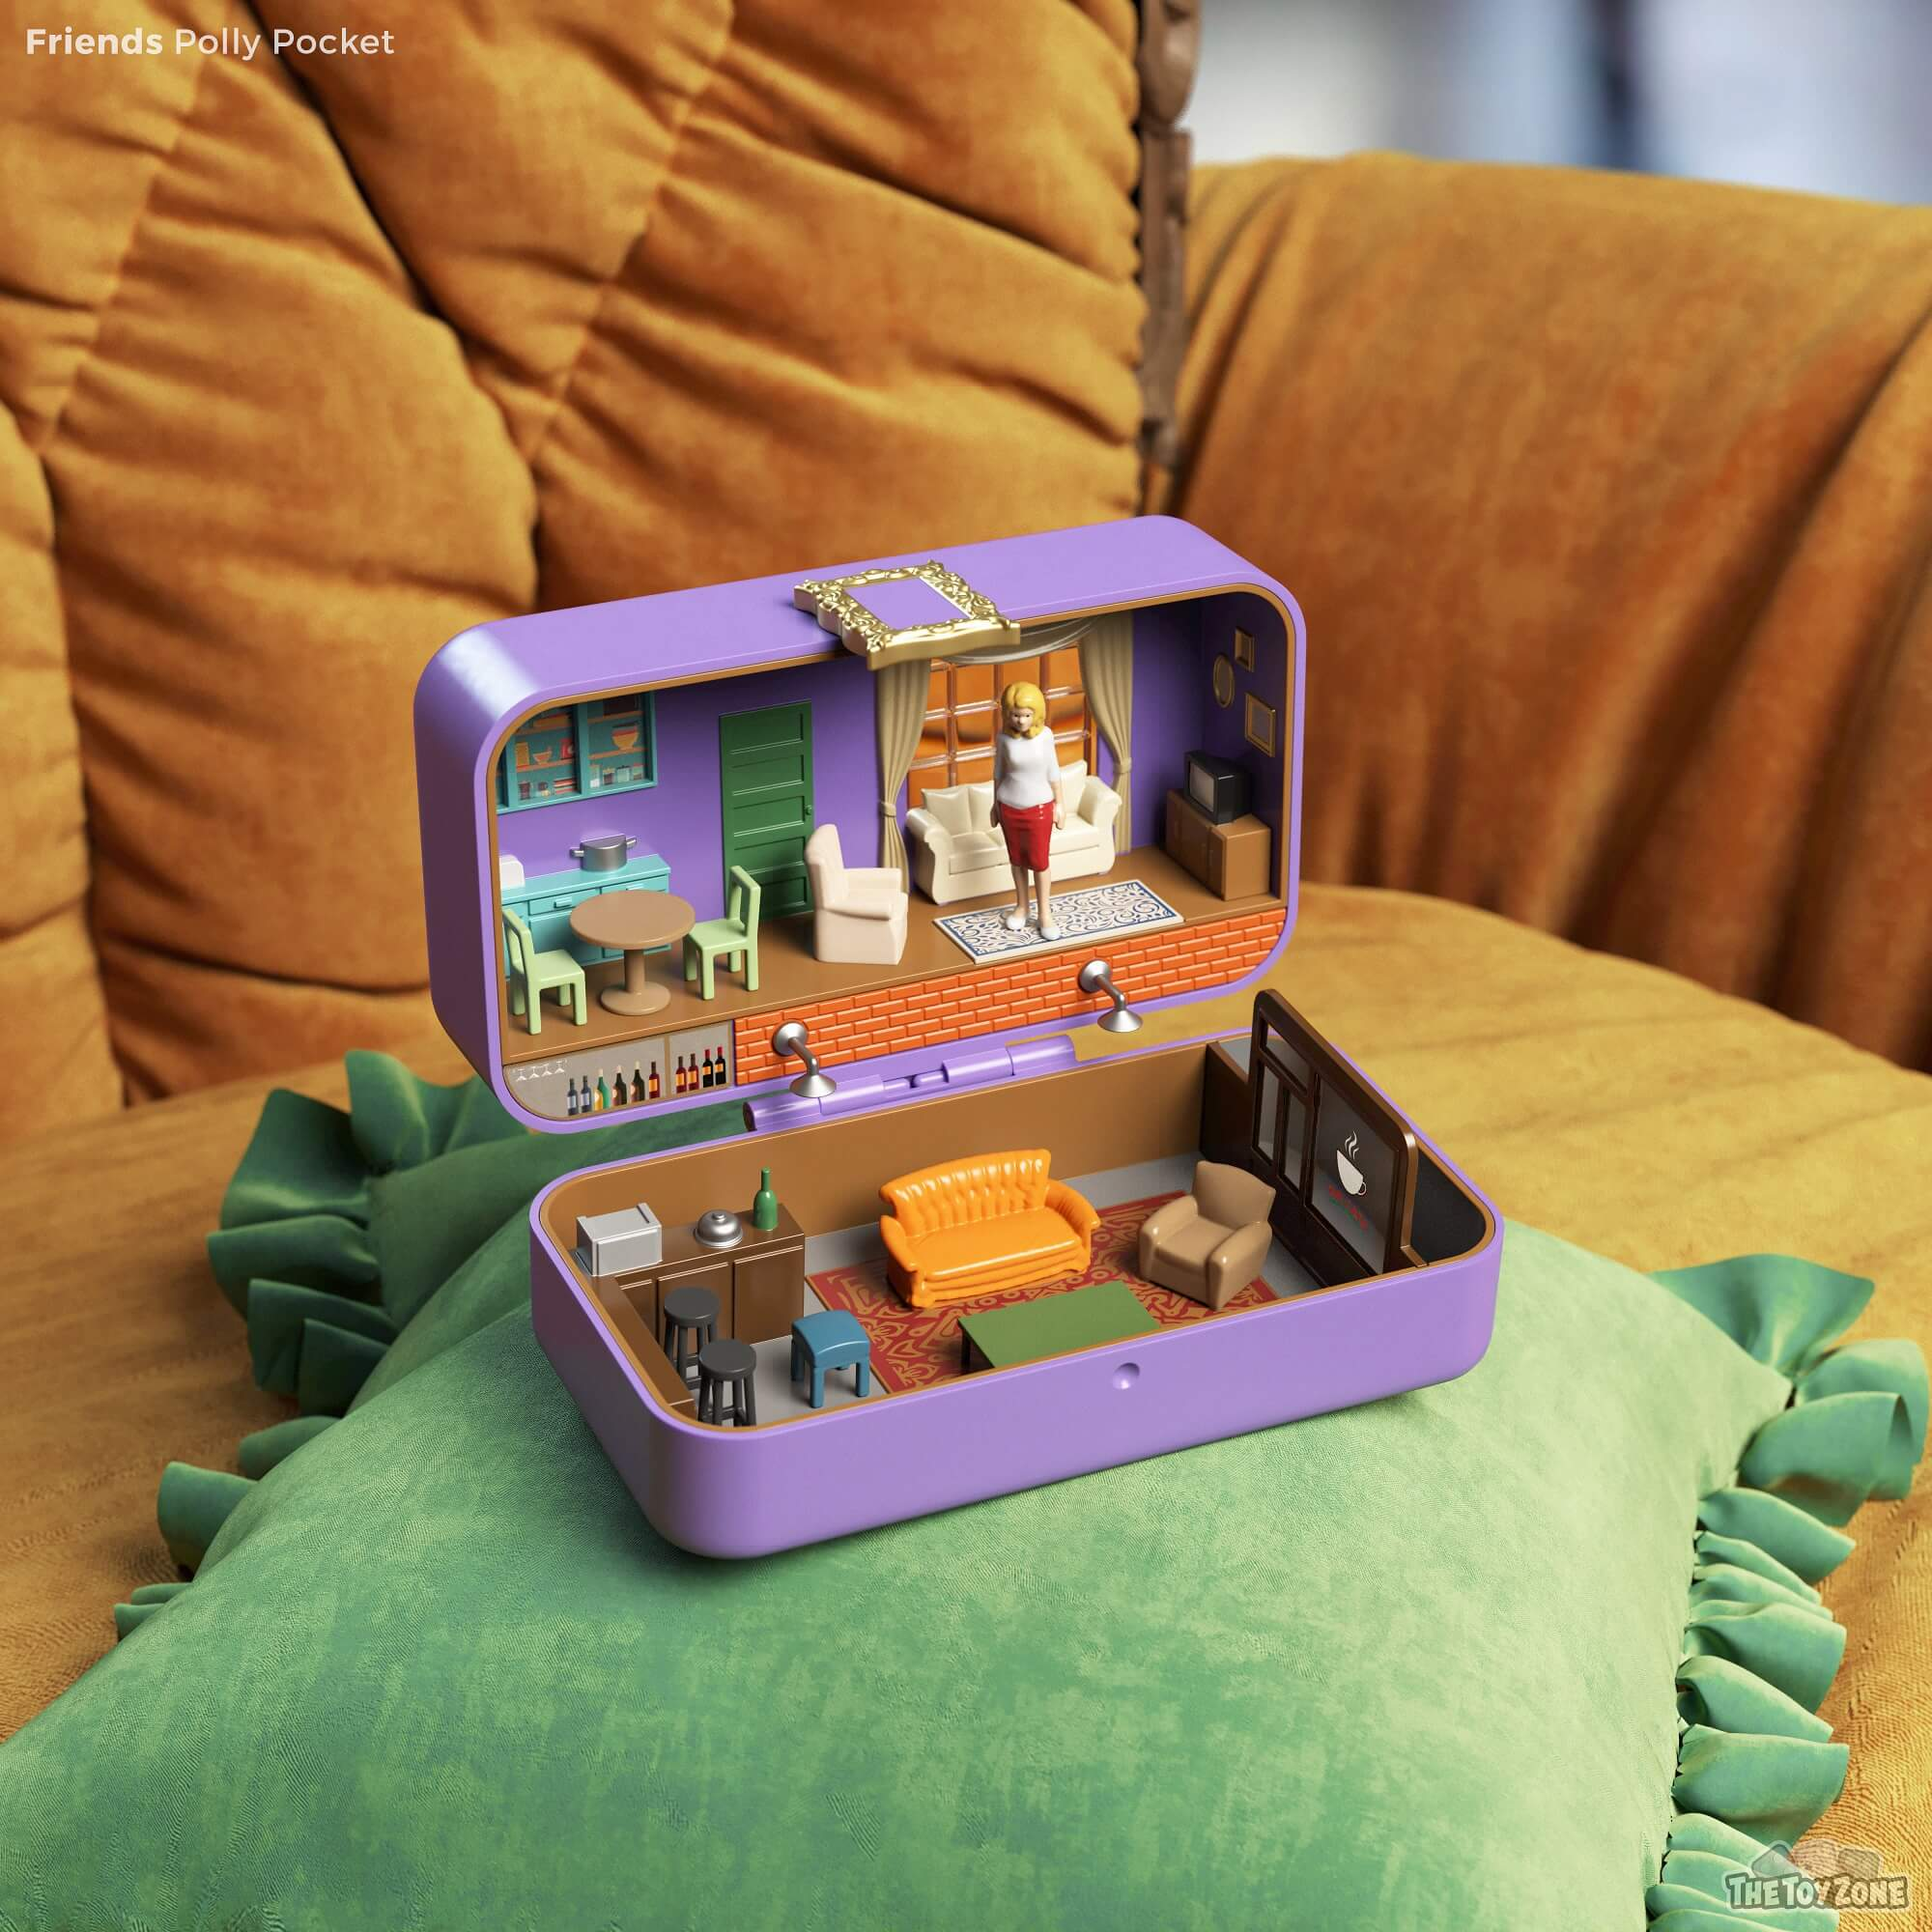 The Simpsons, Friends, and Stranger Things get transformed into Polly Pockets 18